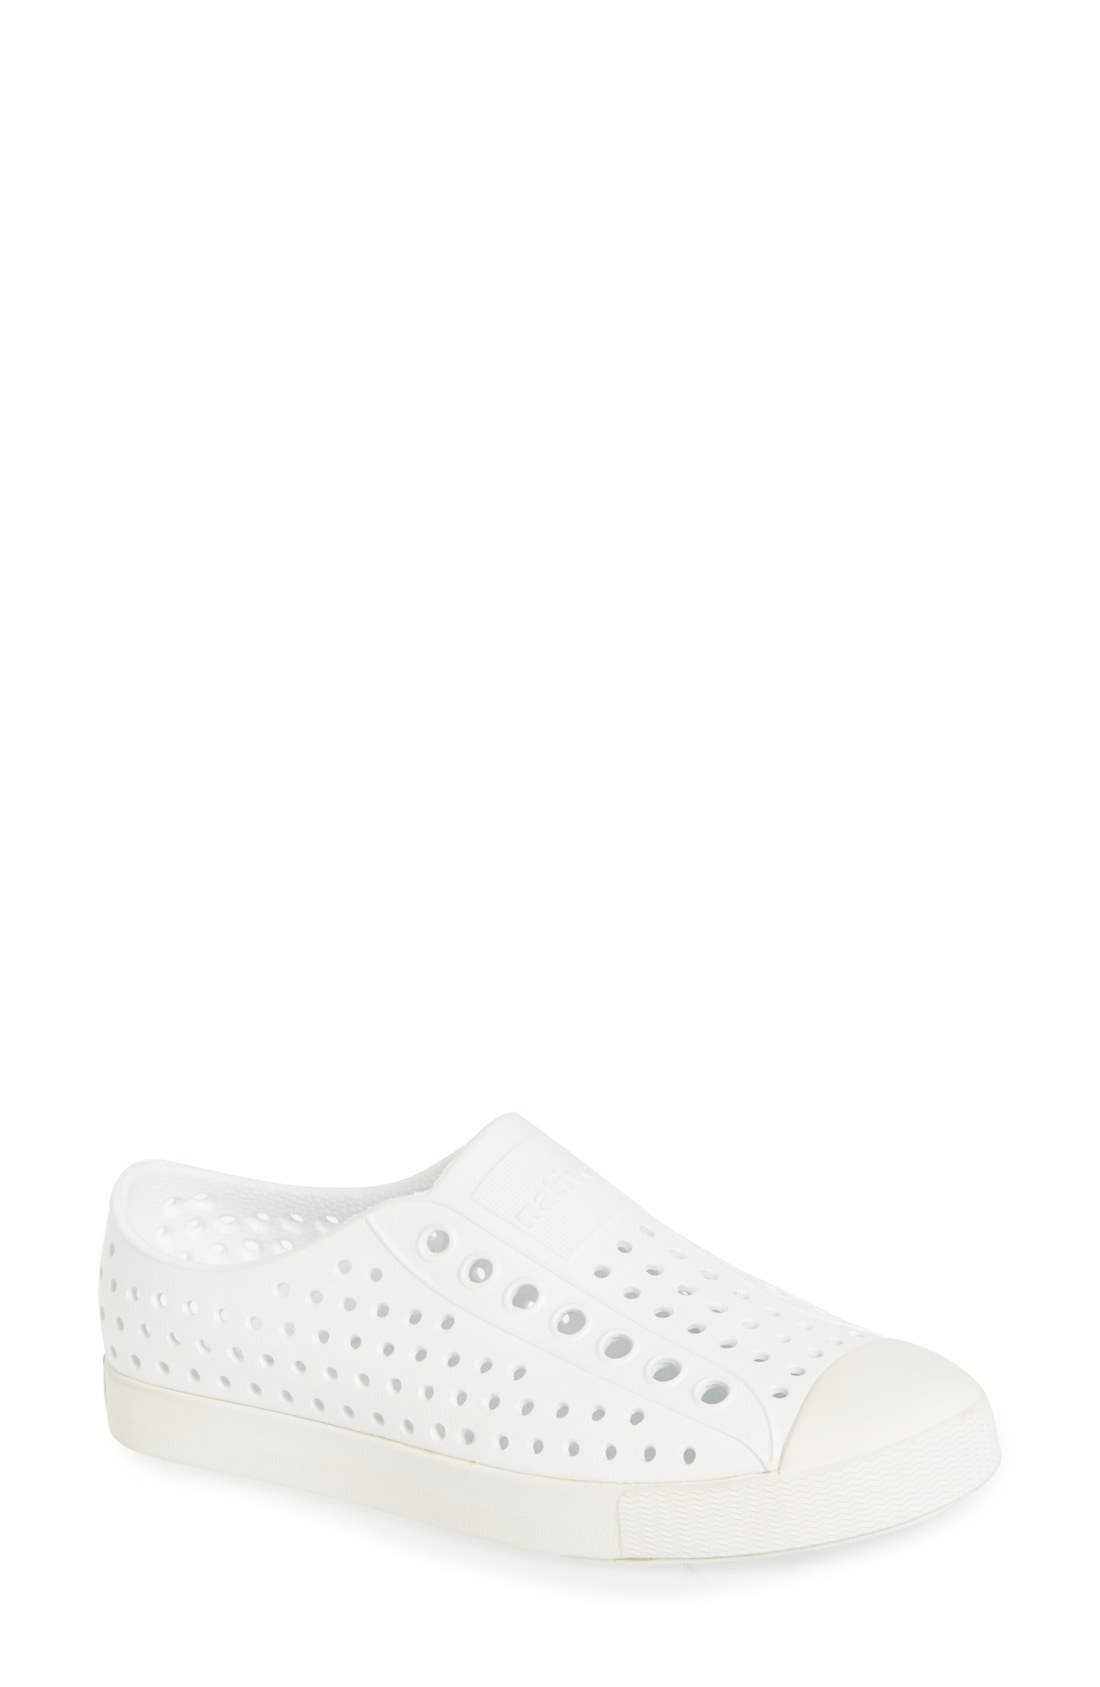 Native Shoes Jefferson Vegan Perforated Sneaker, White